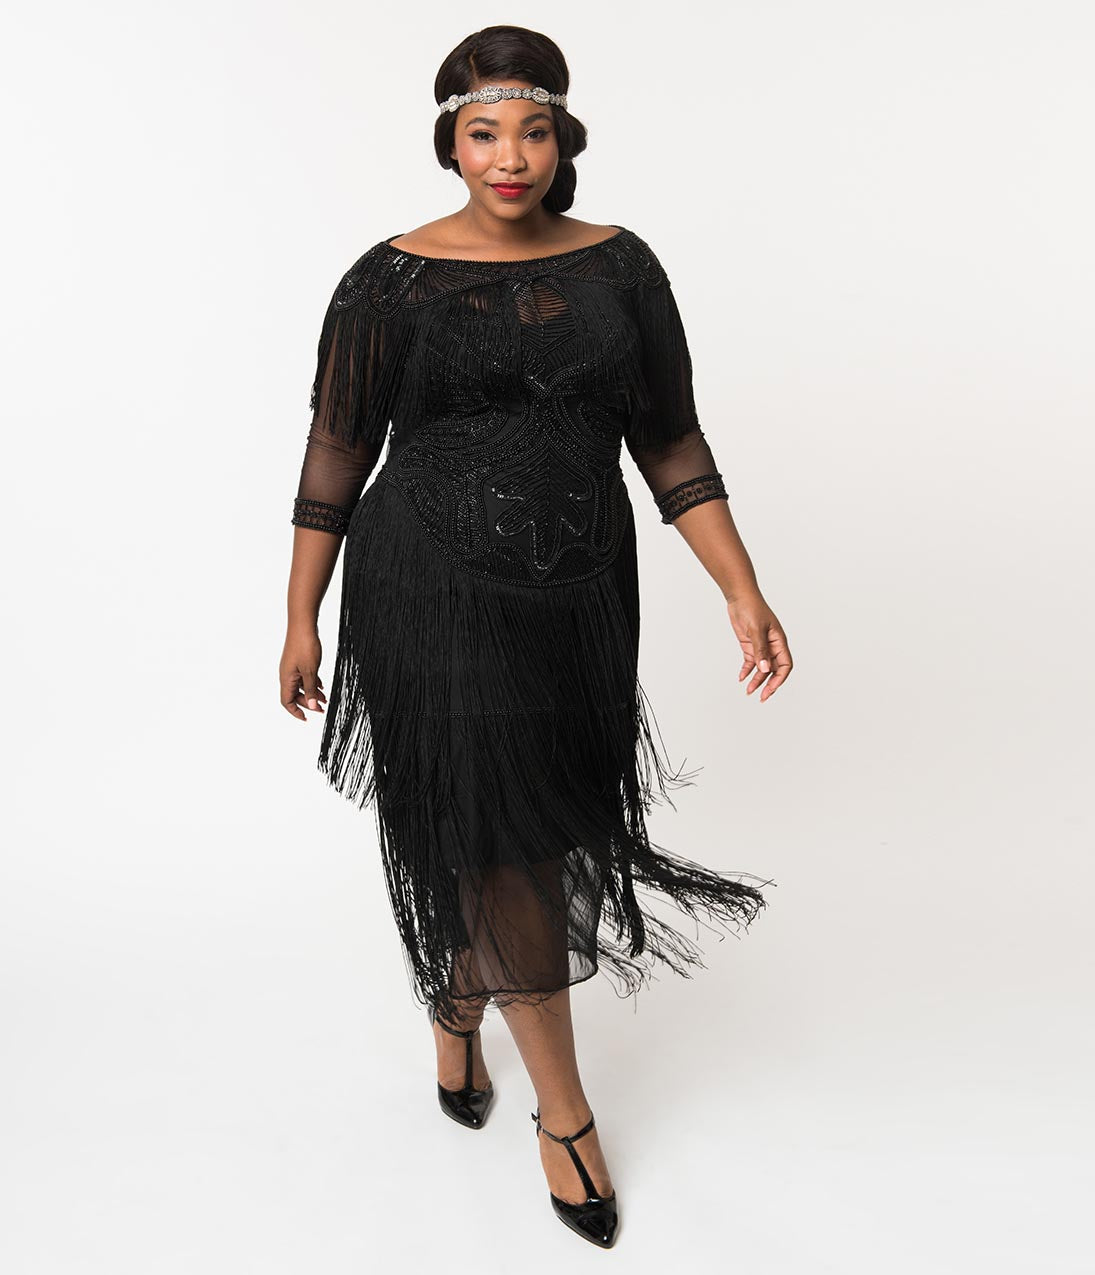 1920s Evening Gowns by Year Plus Size 1920S Style Black Beaded Mesh Glam Fringe Flapper Maxi Gown $248.00 AT vintagedancer.com